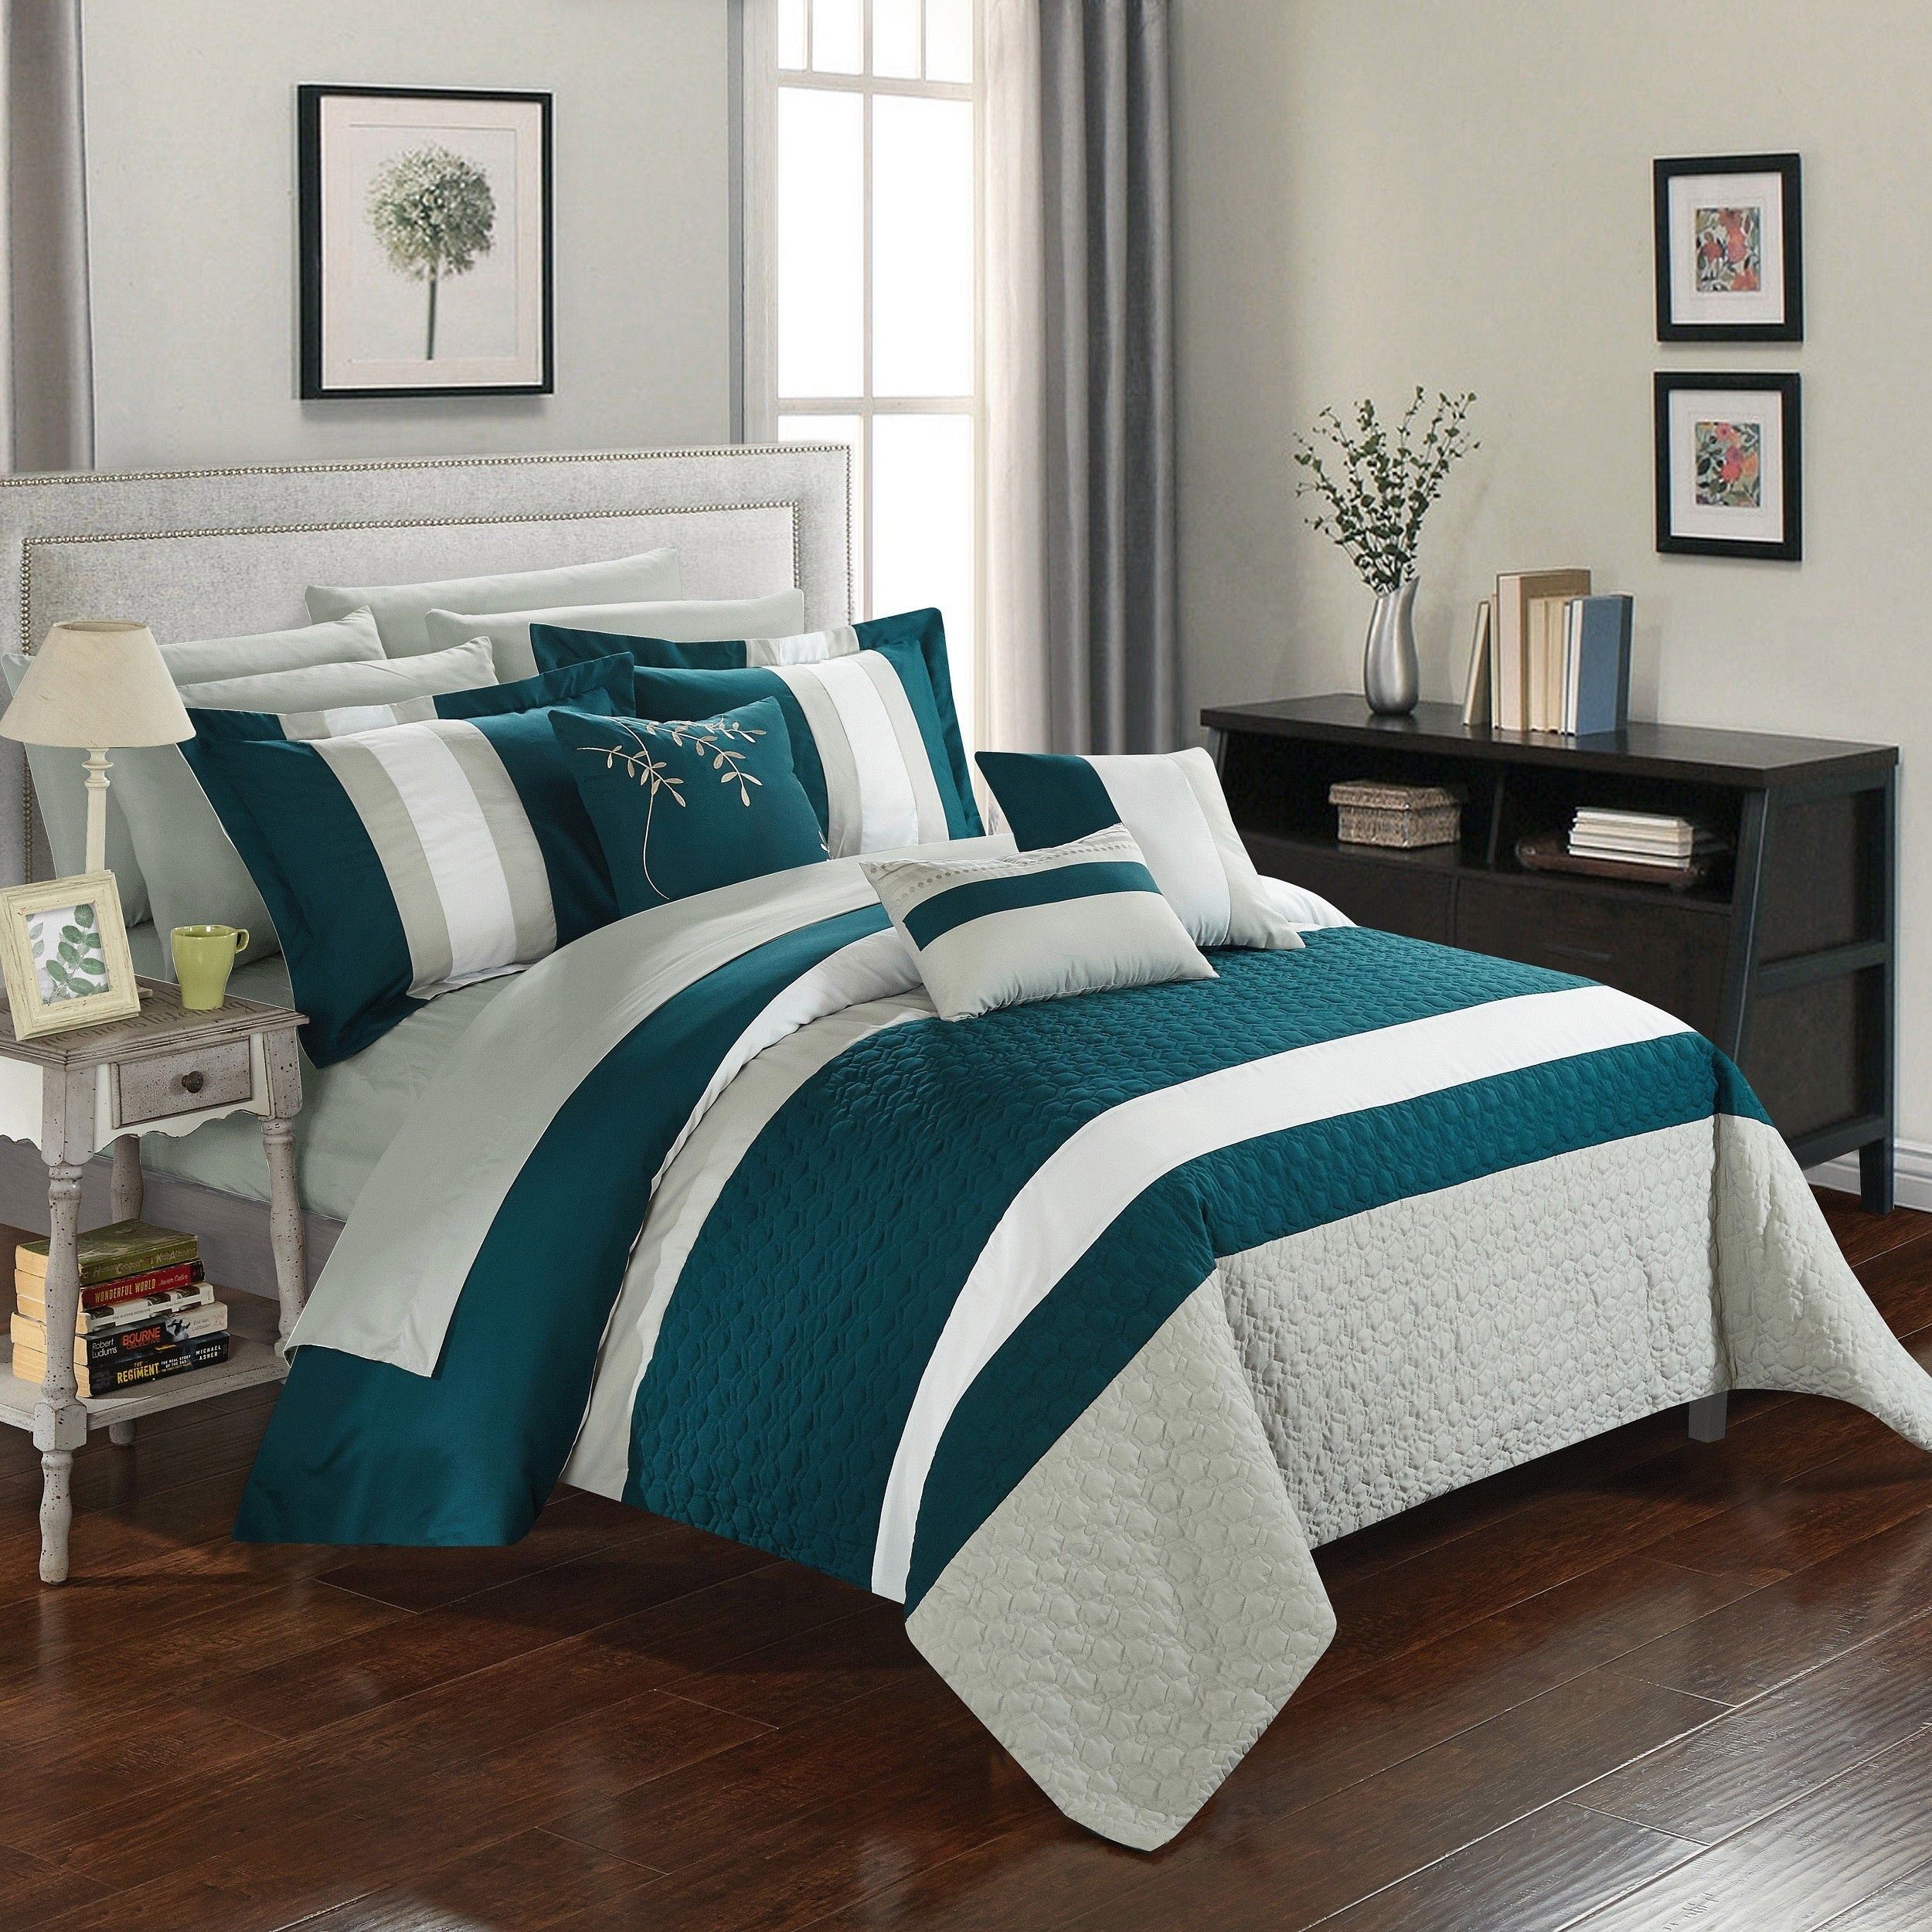 Chic Home 10 Piece Jared Bed In A Bag Teal Comforter Set On Free Shipping Today 12830402